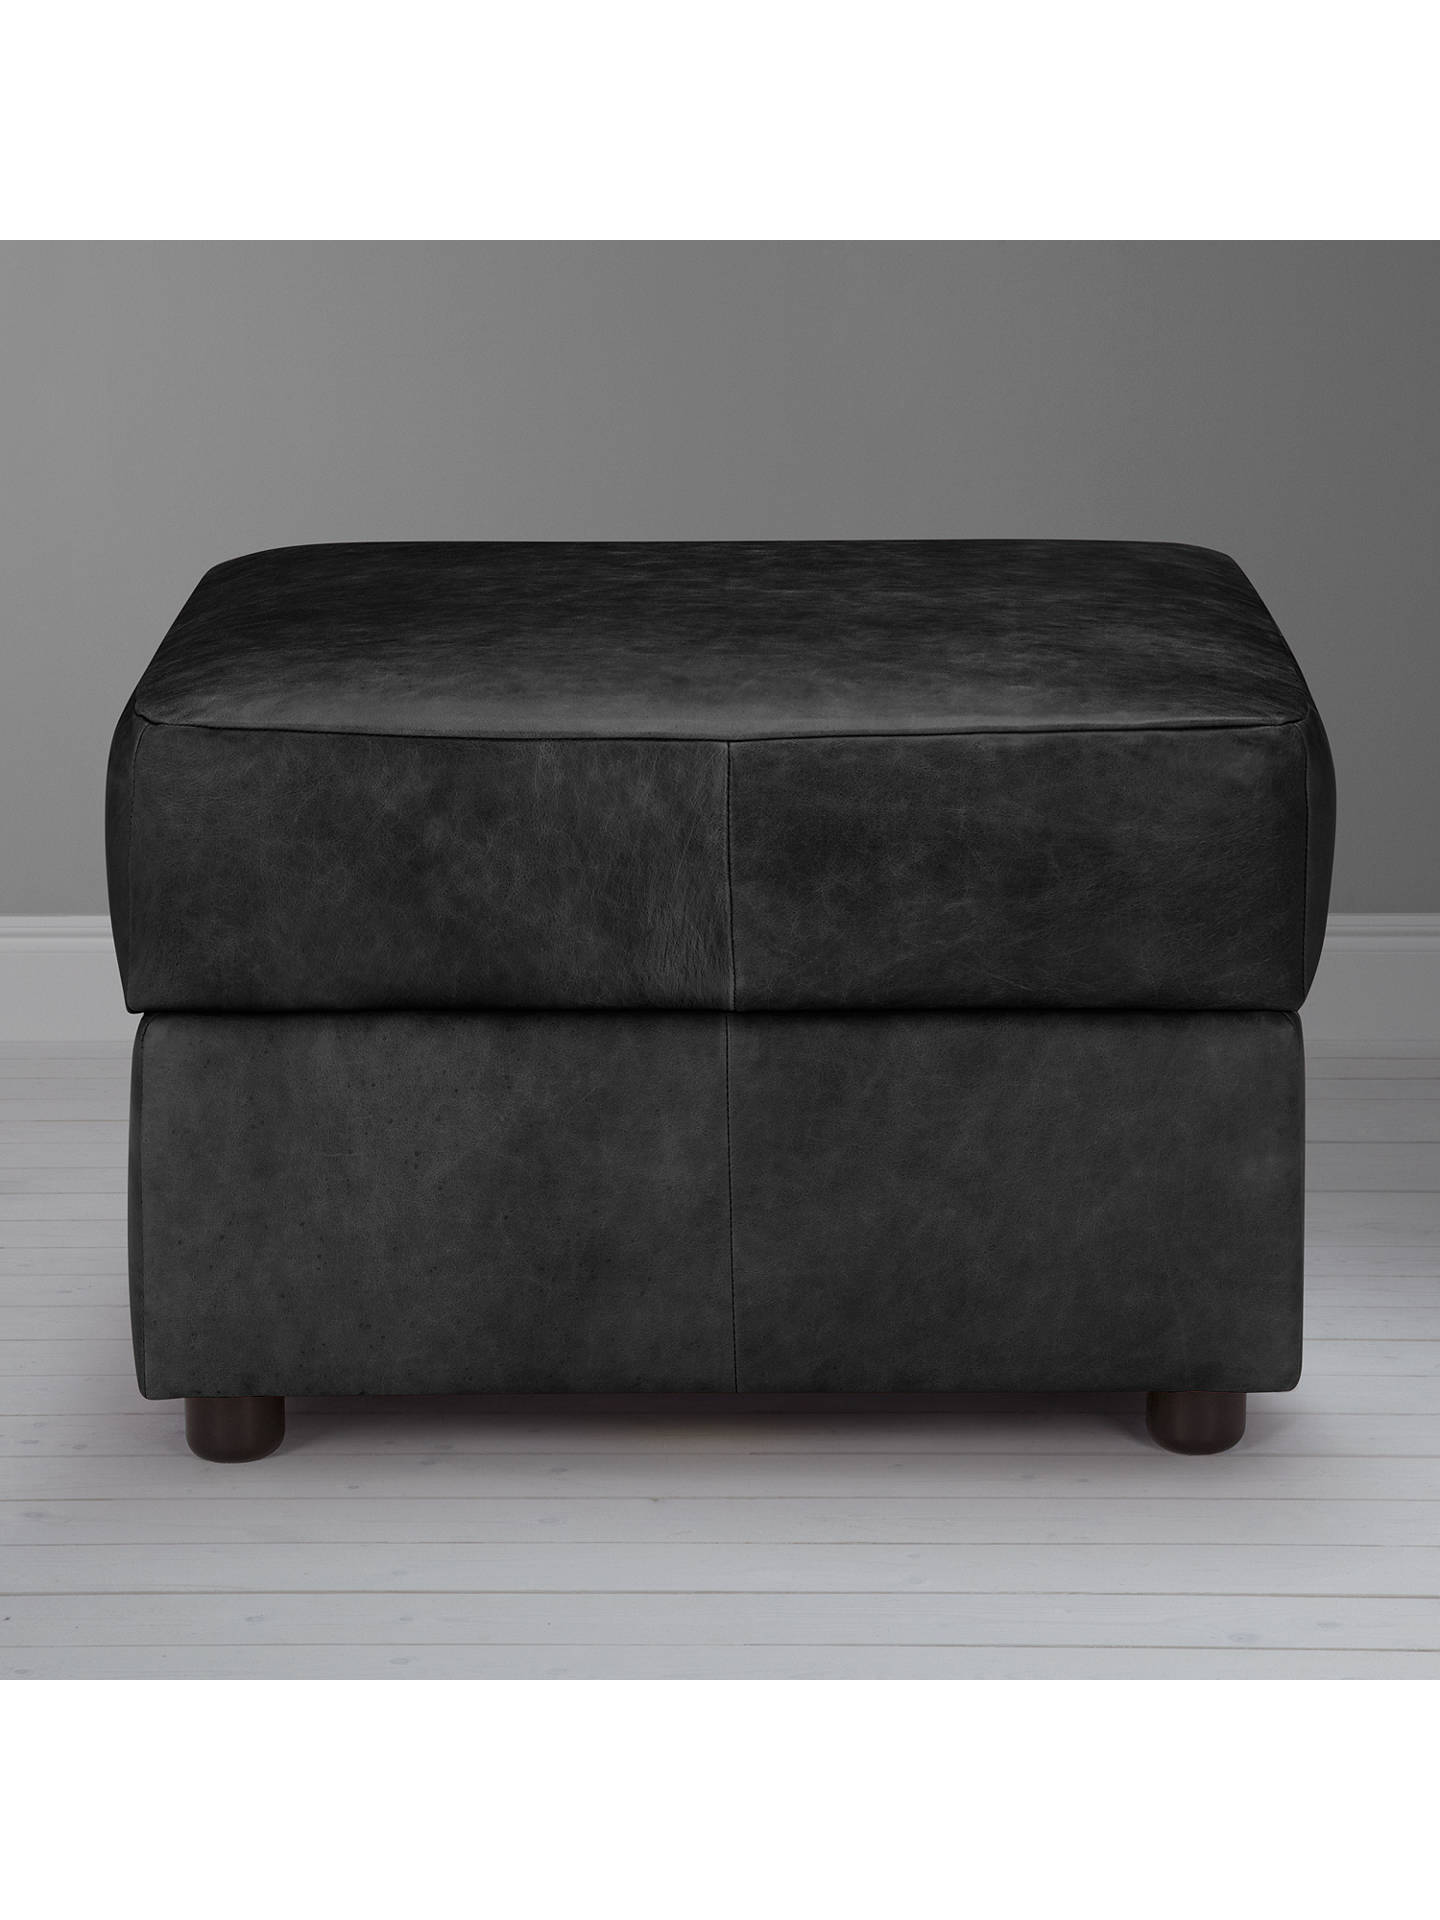 BuyJohn Lewis & Partners Oliver Leather Modular Storage Stool Unit, Dark Leg, Contempo Black Online at johnlewis.com